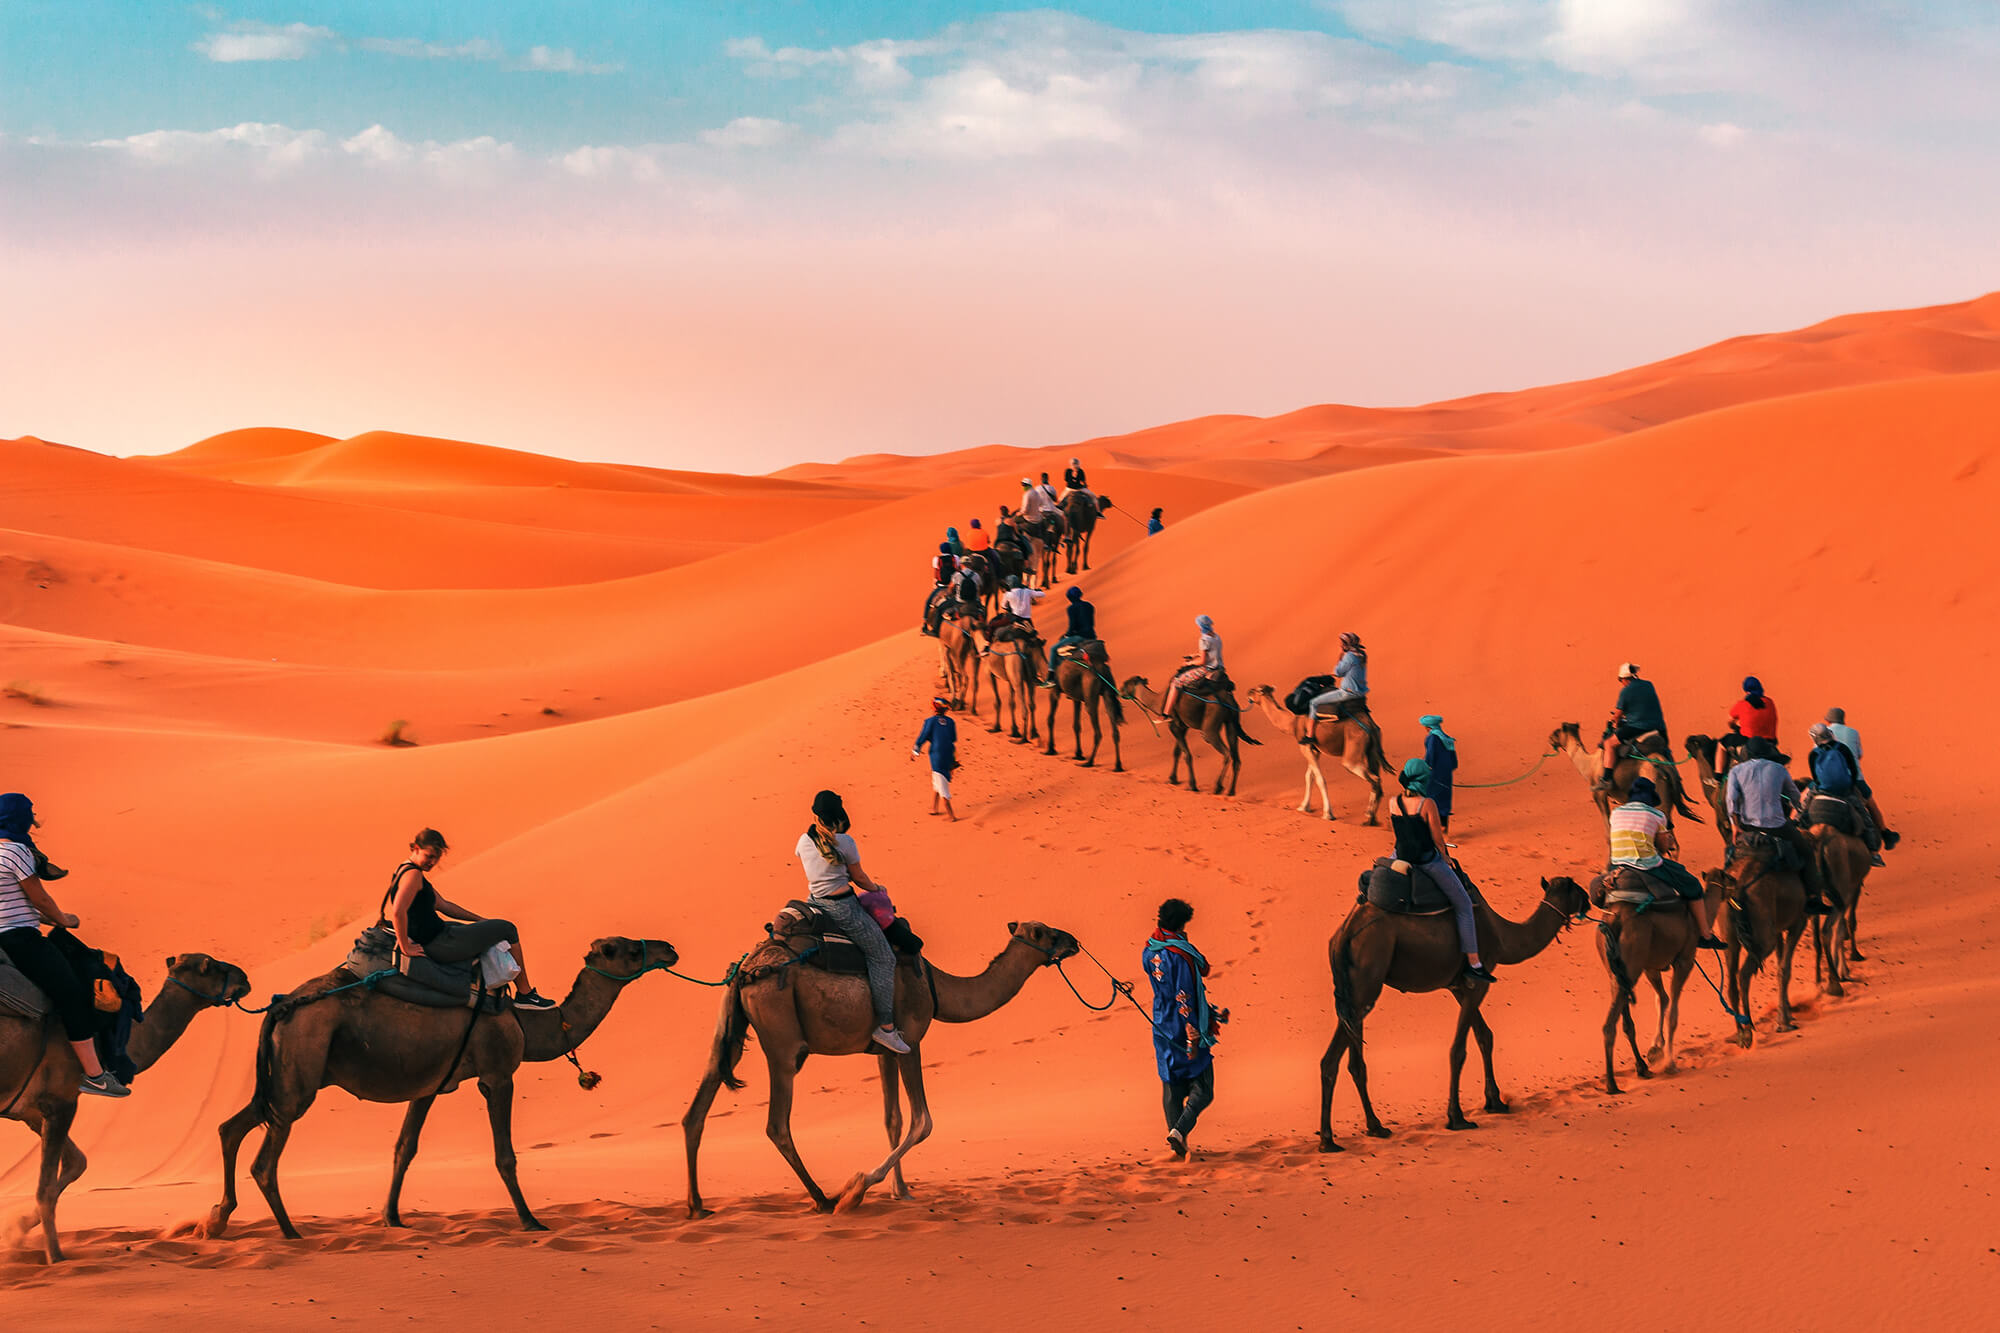 Sahara Desert Tour - Top Ten Things To Do in Morocco - Camel Tour